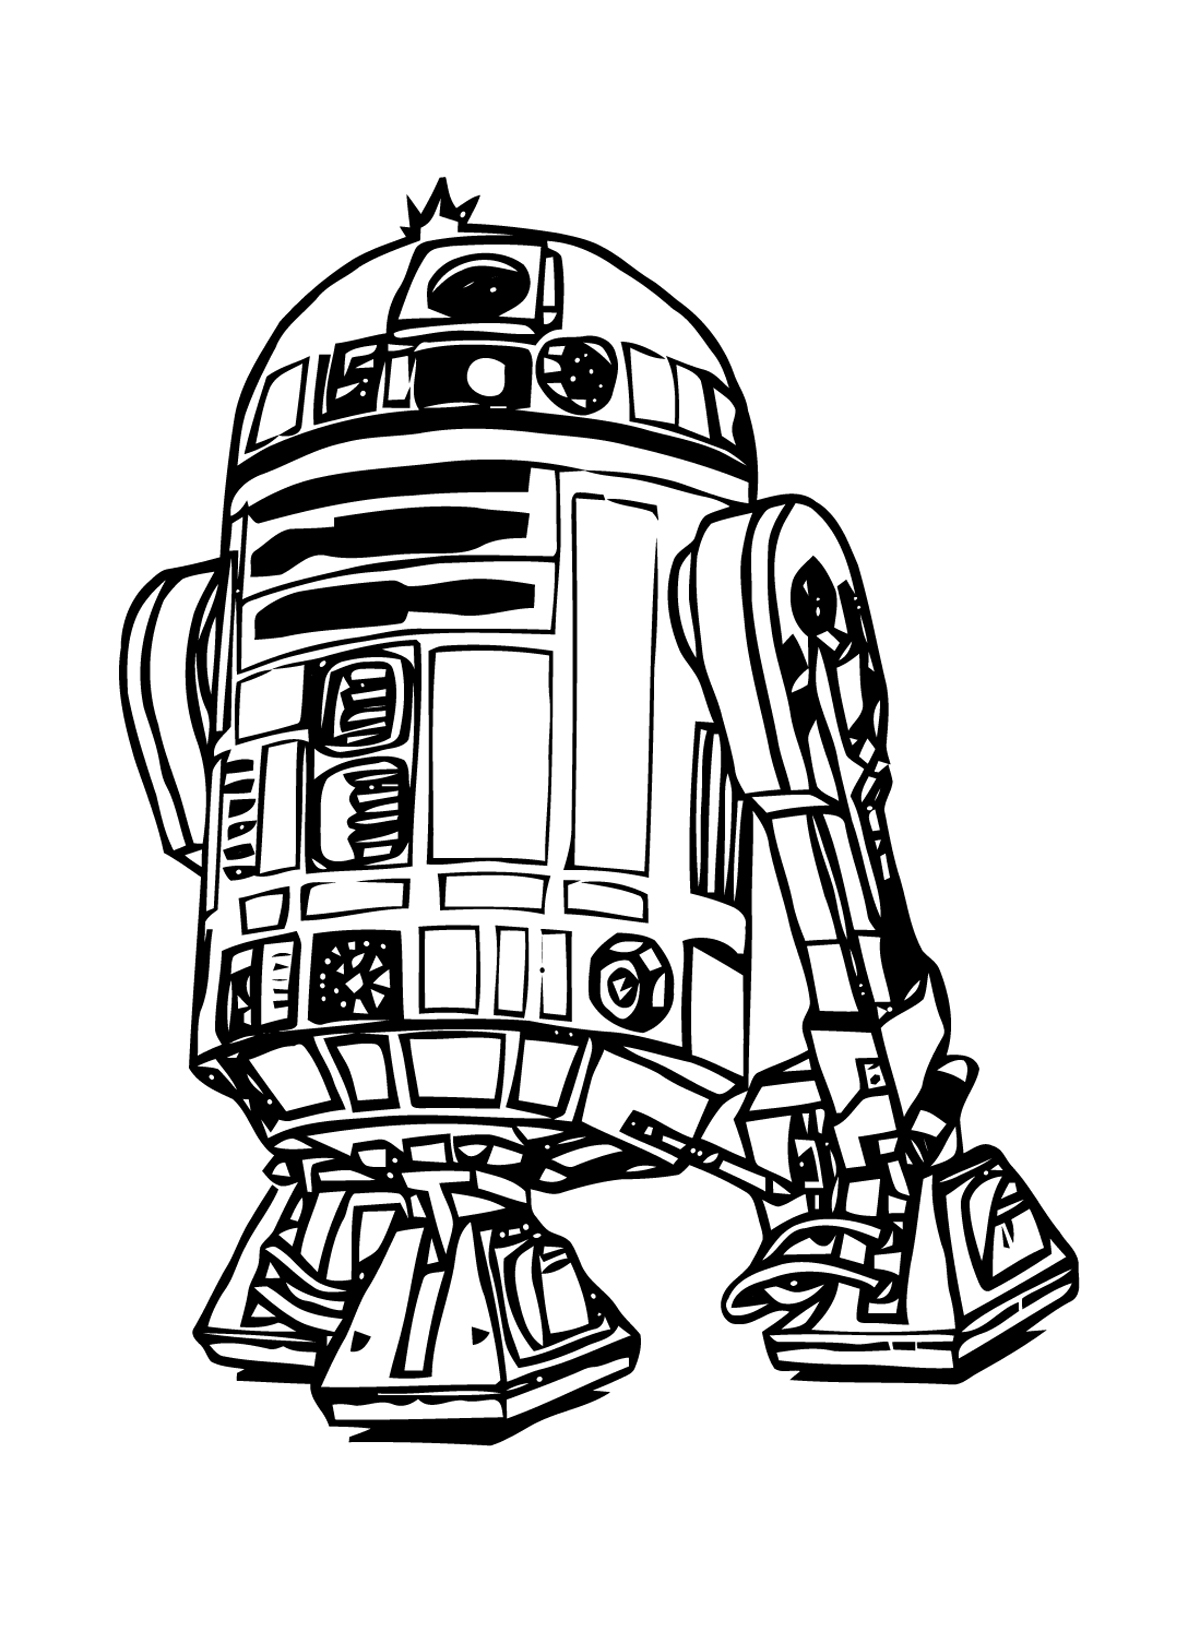 Star wars 9 coloriage star wars coloriages pour enfants - Star wars gratuit ...